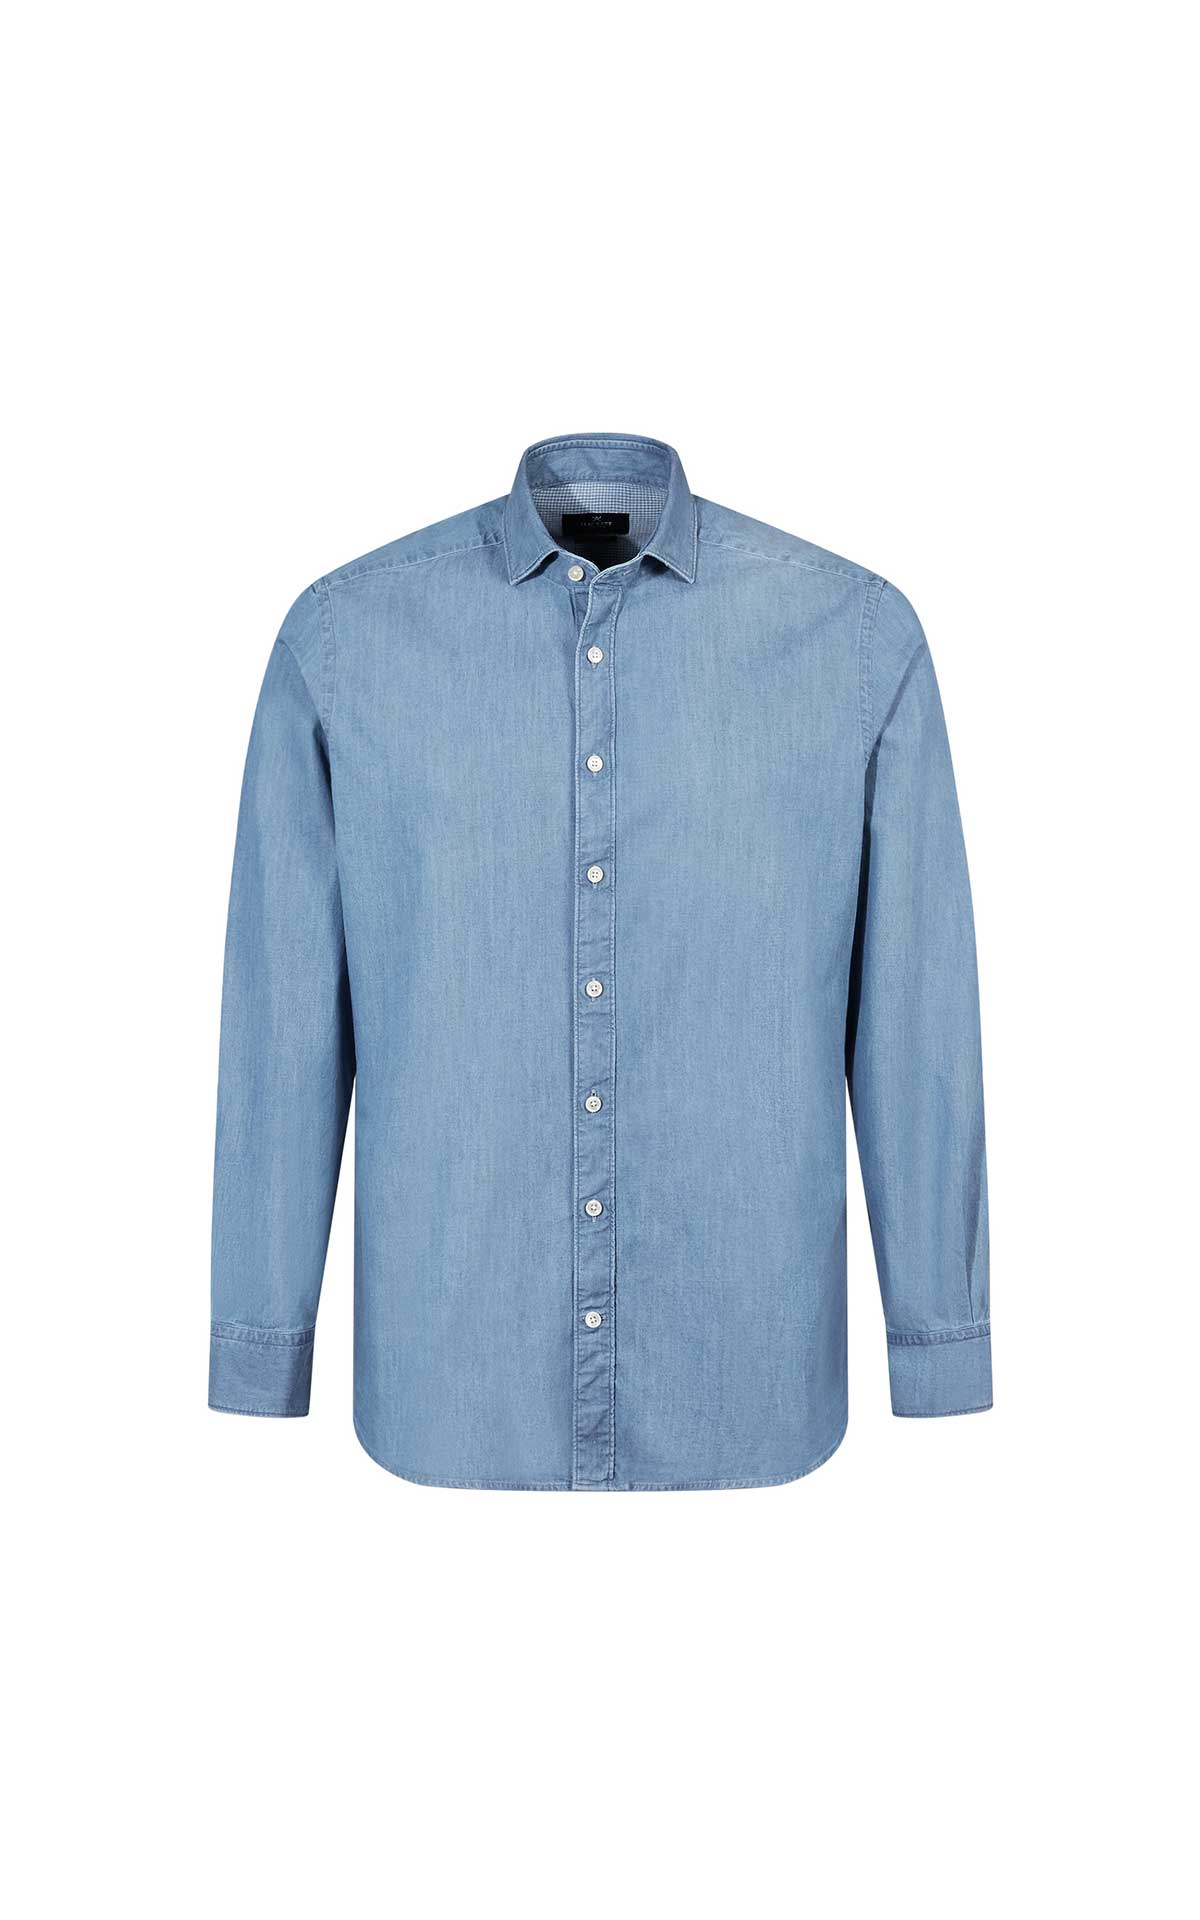 Denim shirt for men from Hackett